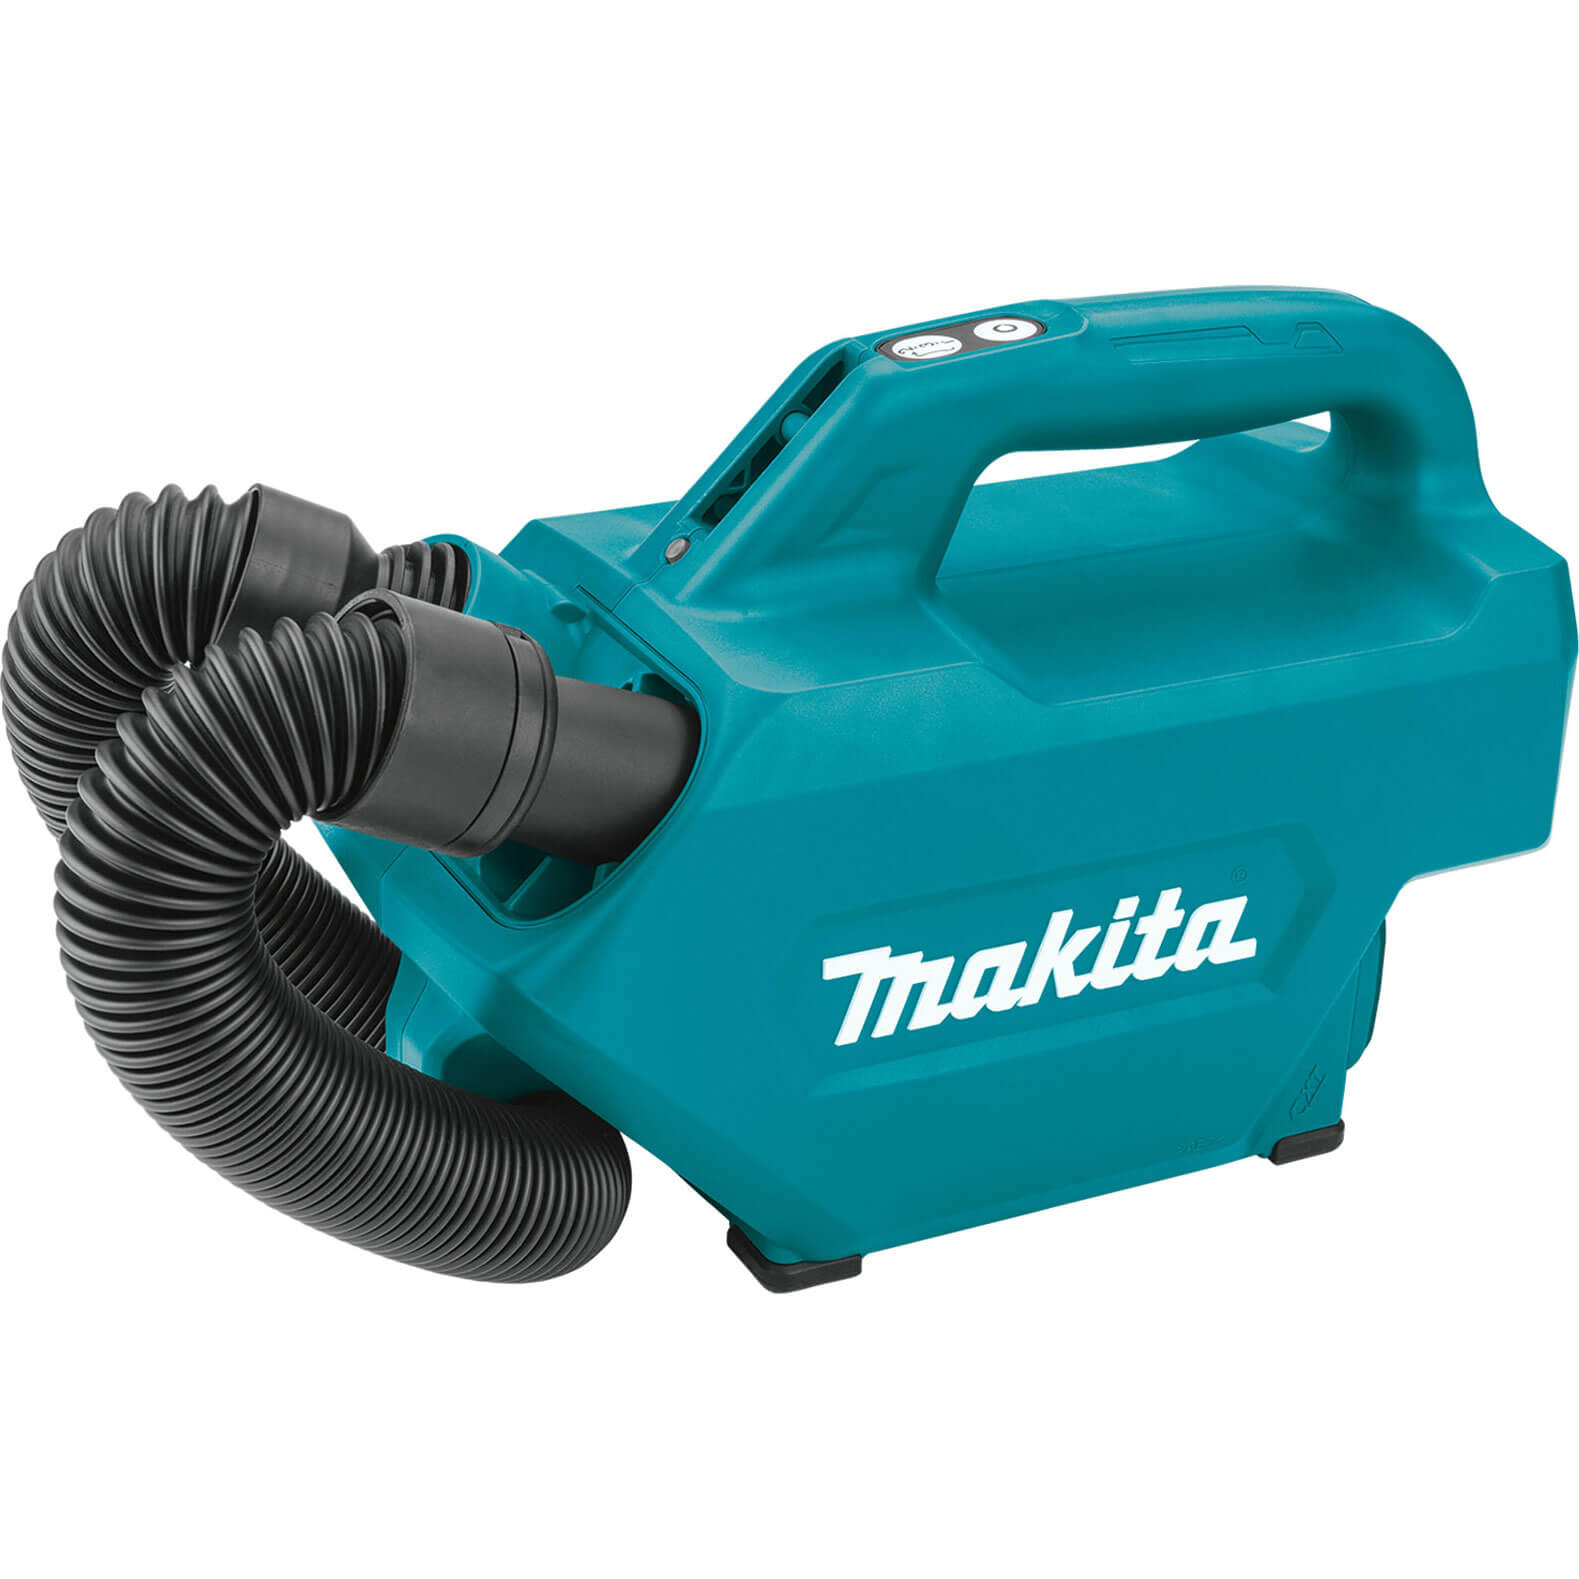 Makita CL121D 12v CXT Cordless Handheld Vacuum Cleaner No Batteries No Charger No Case